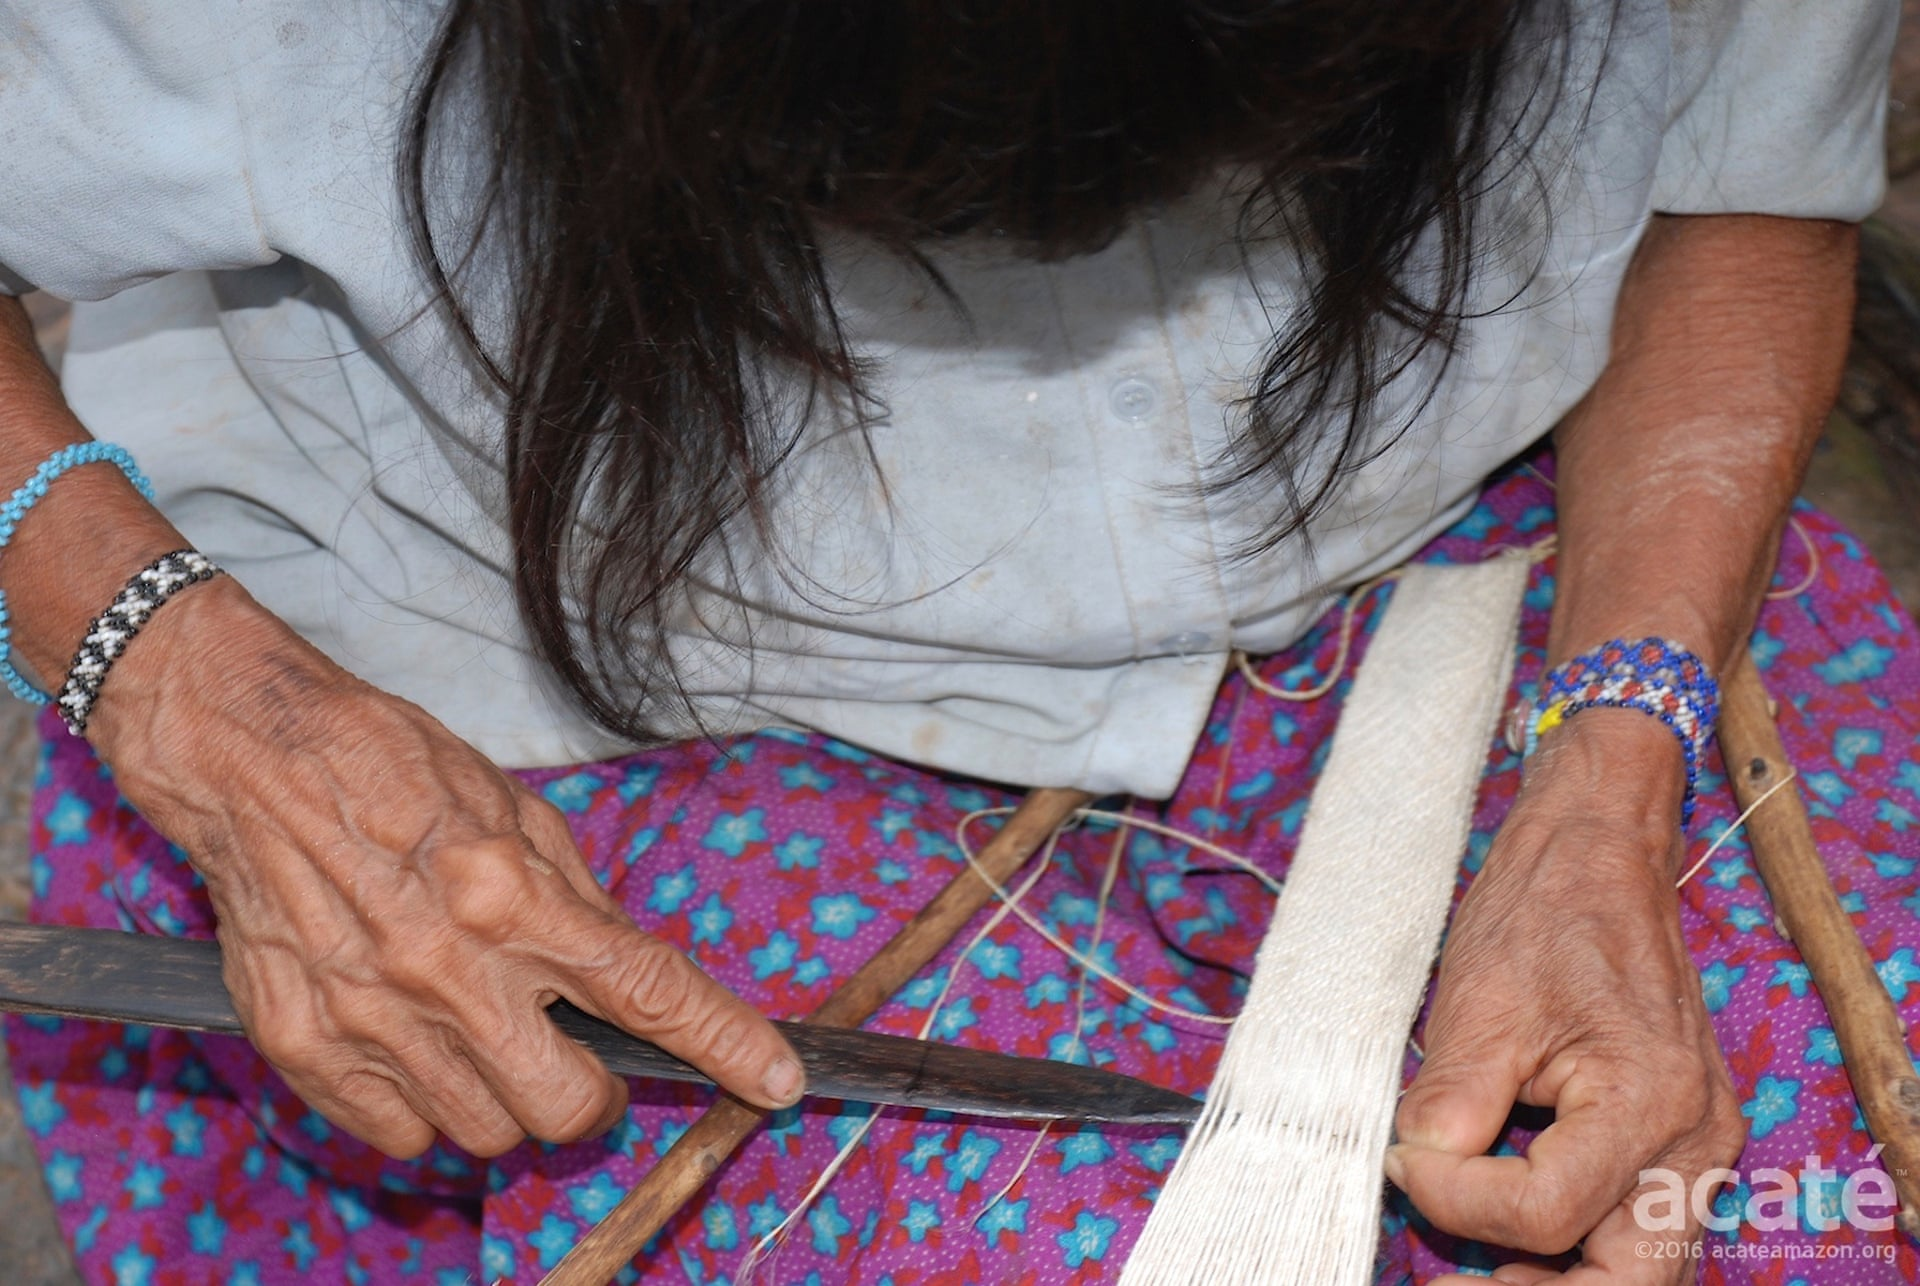 Juama Perez Chispi, Segundo's mother, weaving one of the bracelets. Photograph: Acate Amazon Conservation